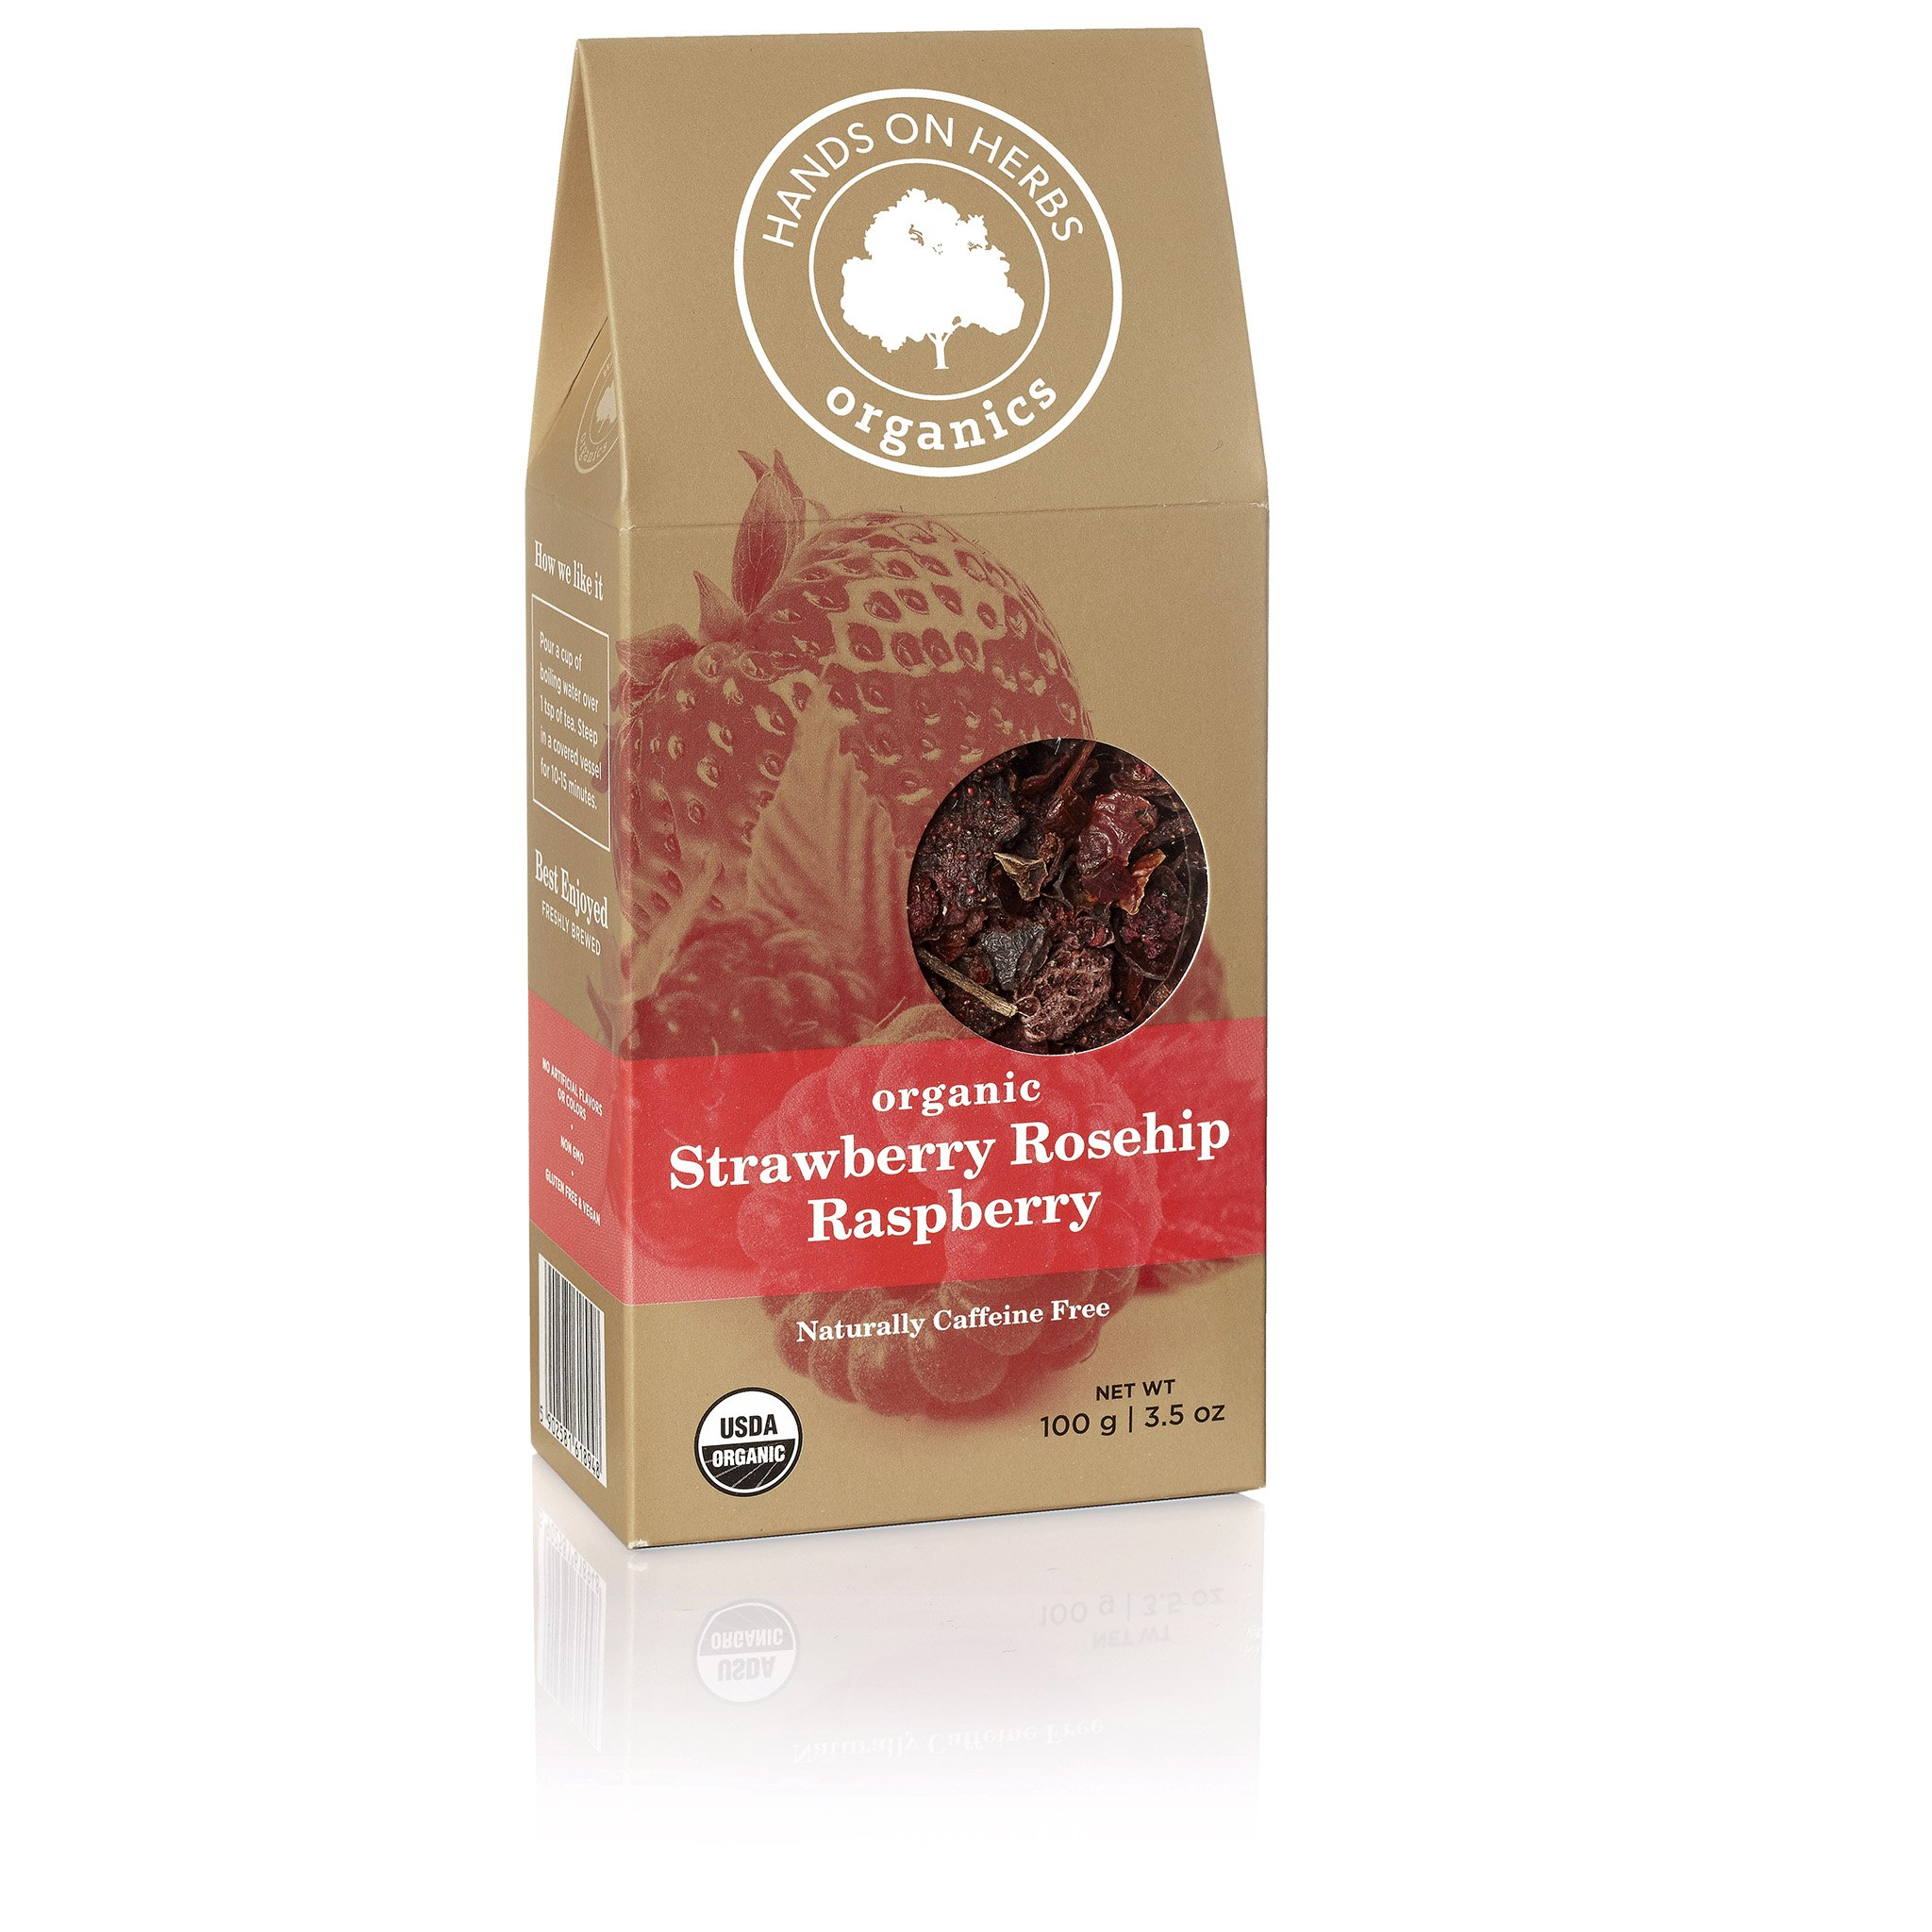 Hands on Herbs Organics Strawberry Rosehip Raspberry Tea | Beautiful and Fragrant Fruit Tea with Organic Whole Fruits - Organic Strawberries, Red Raspberries and Rosehips 3.5 ounces | 100 grams